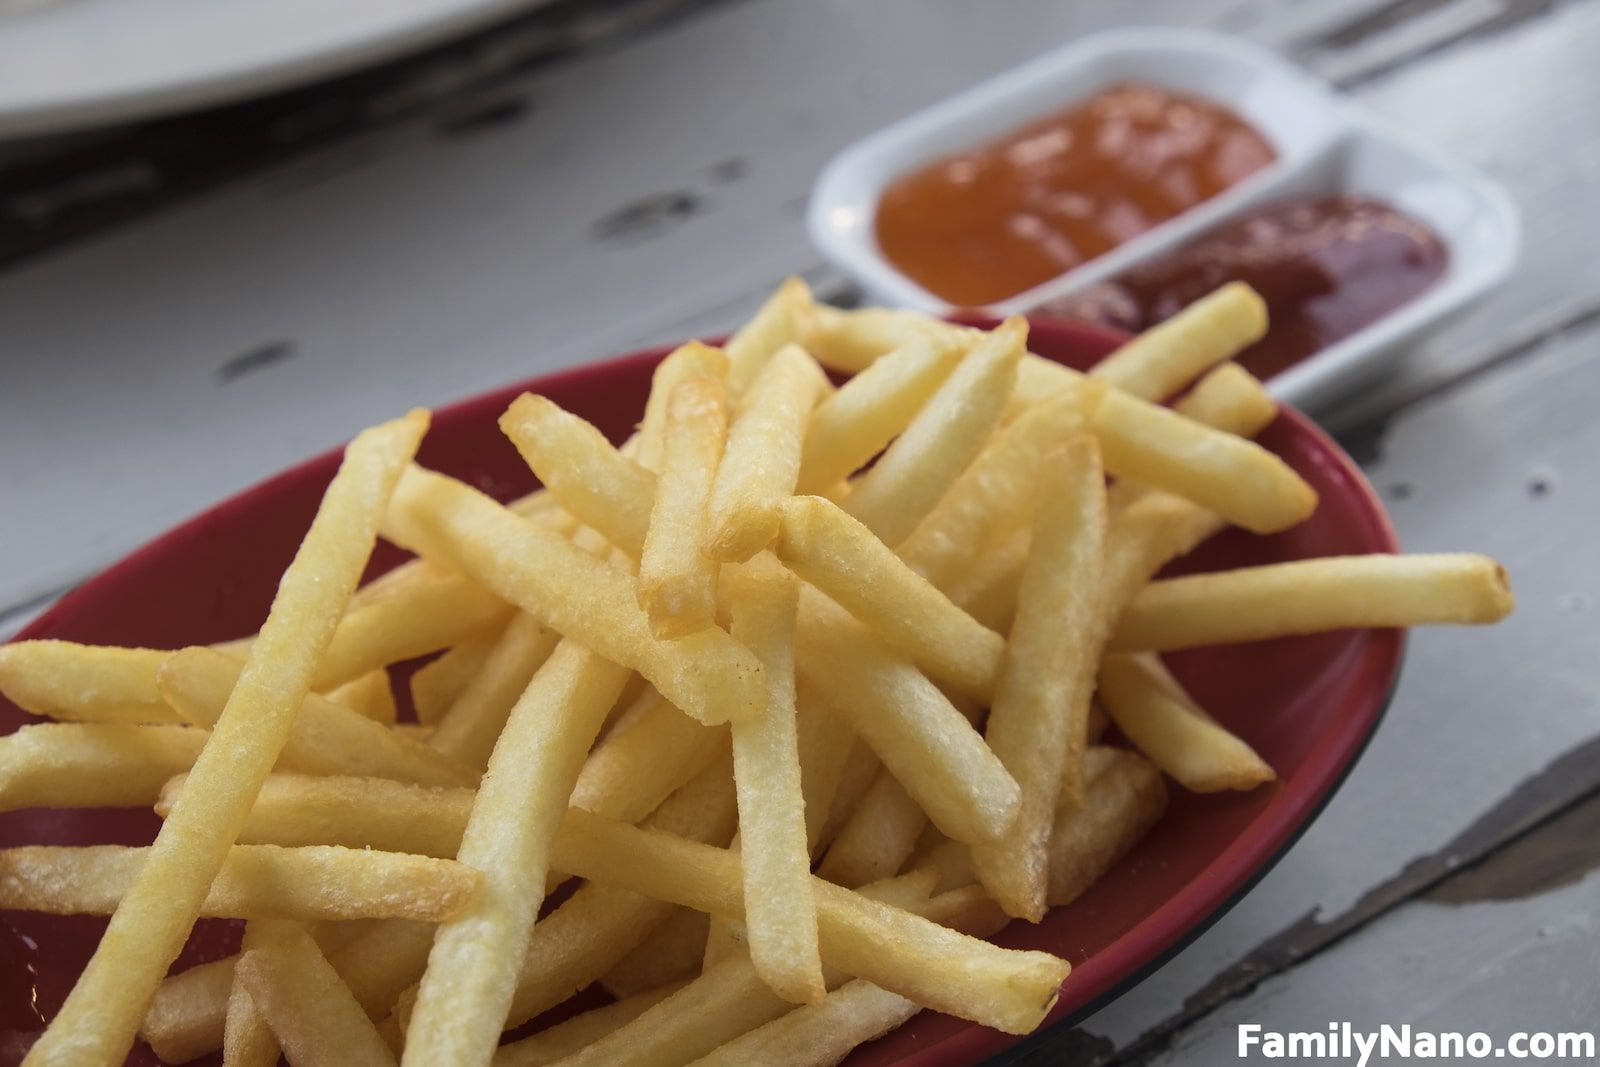 Fries potatoes Air fryer recipes cookbook, Air fryer